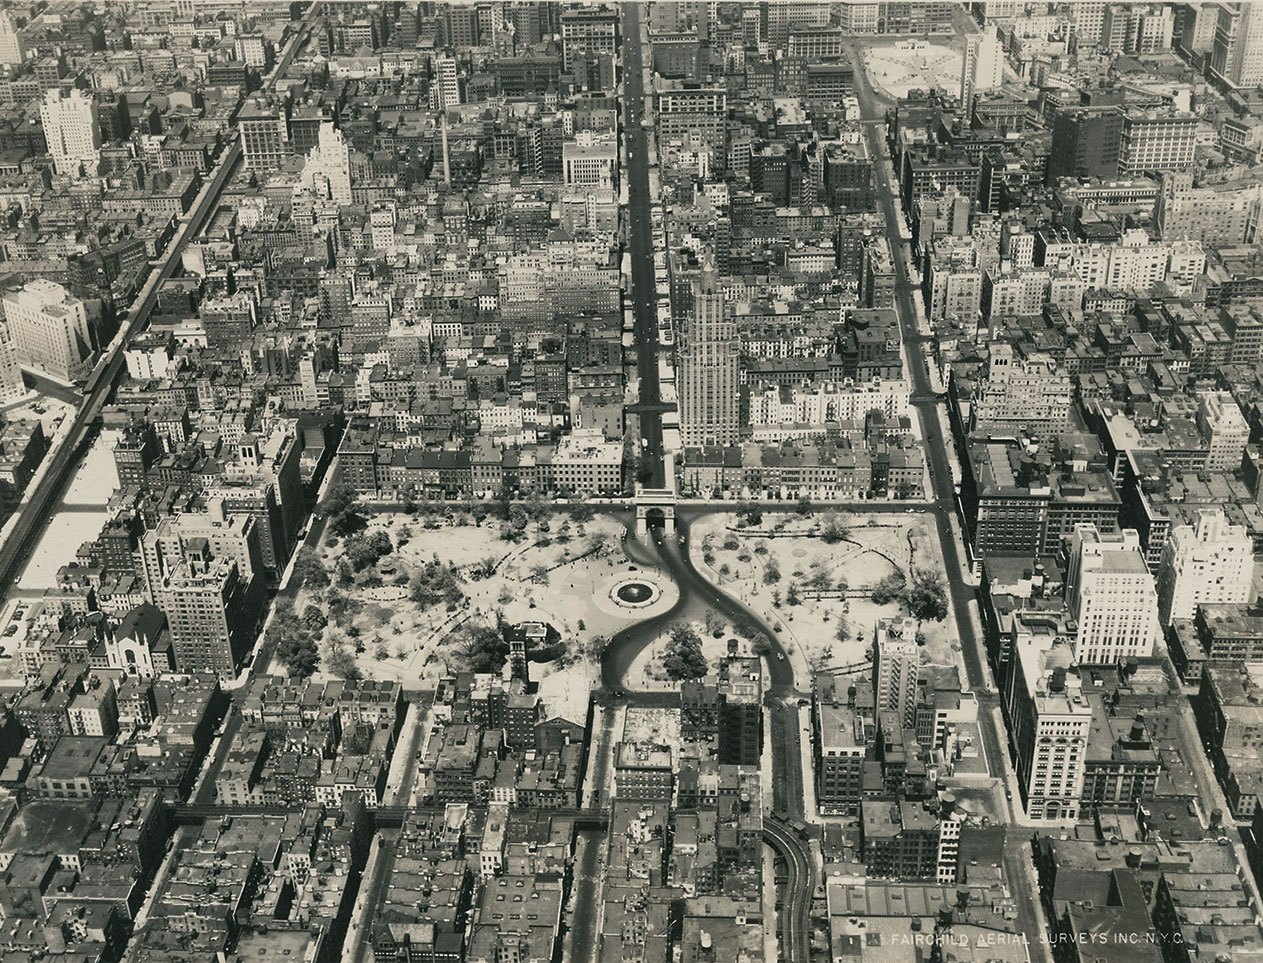 A throwback of an aerial view of Washington Square Park and its surrounding streets.